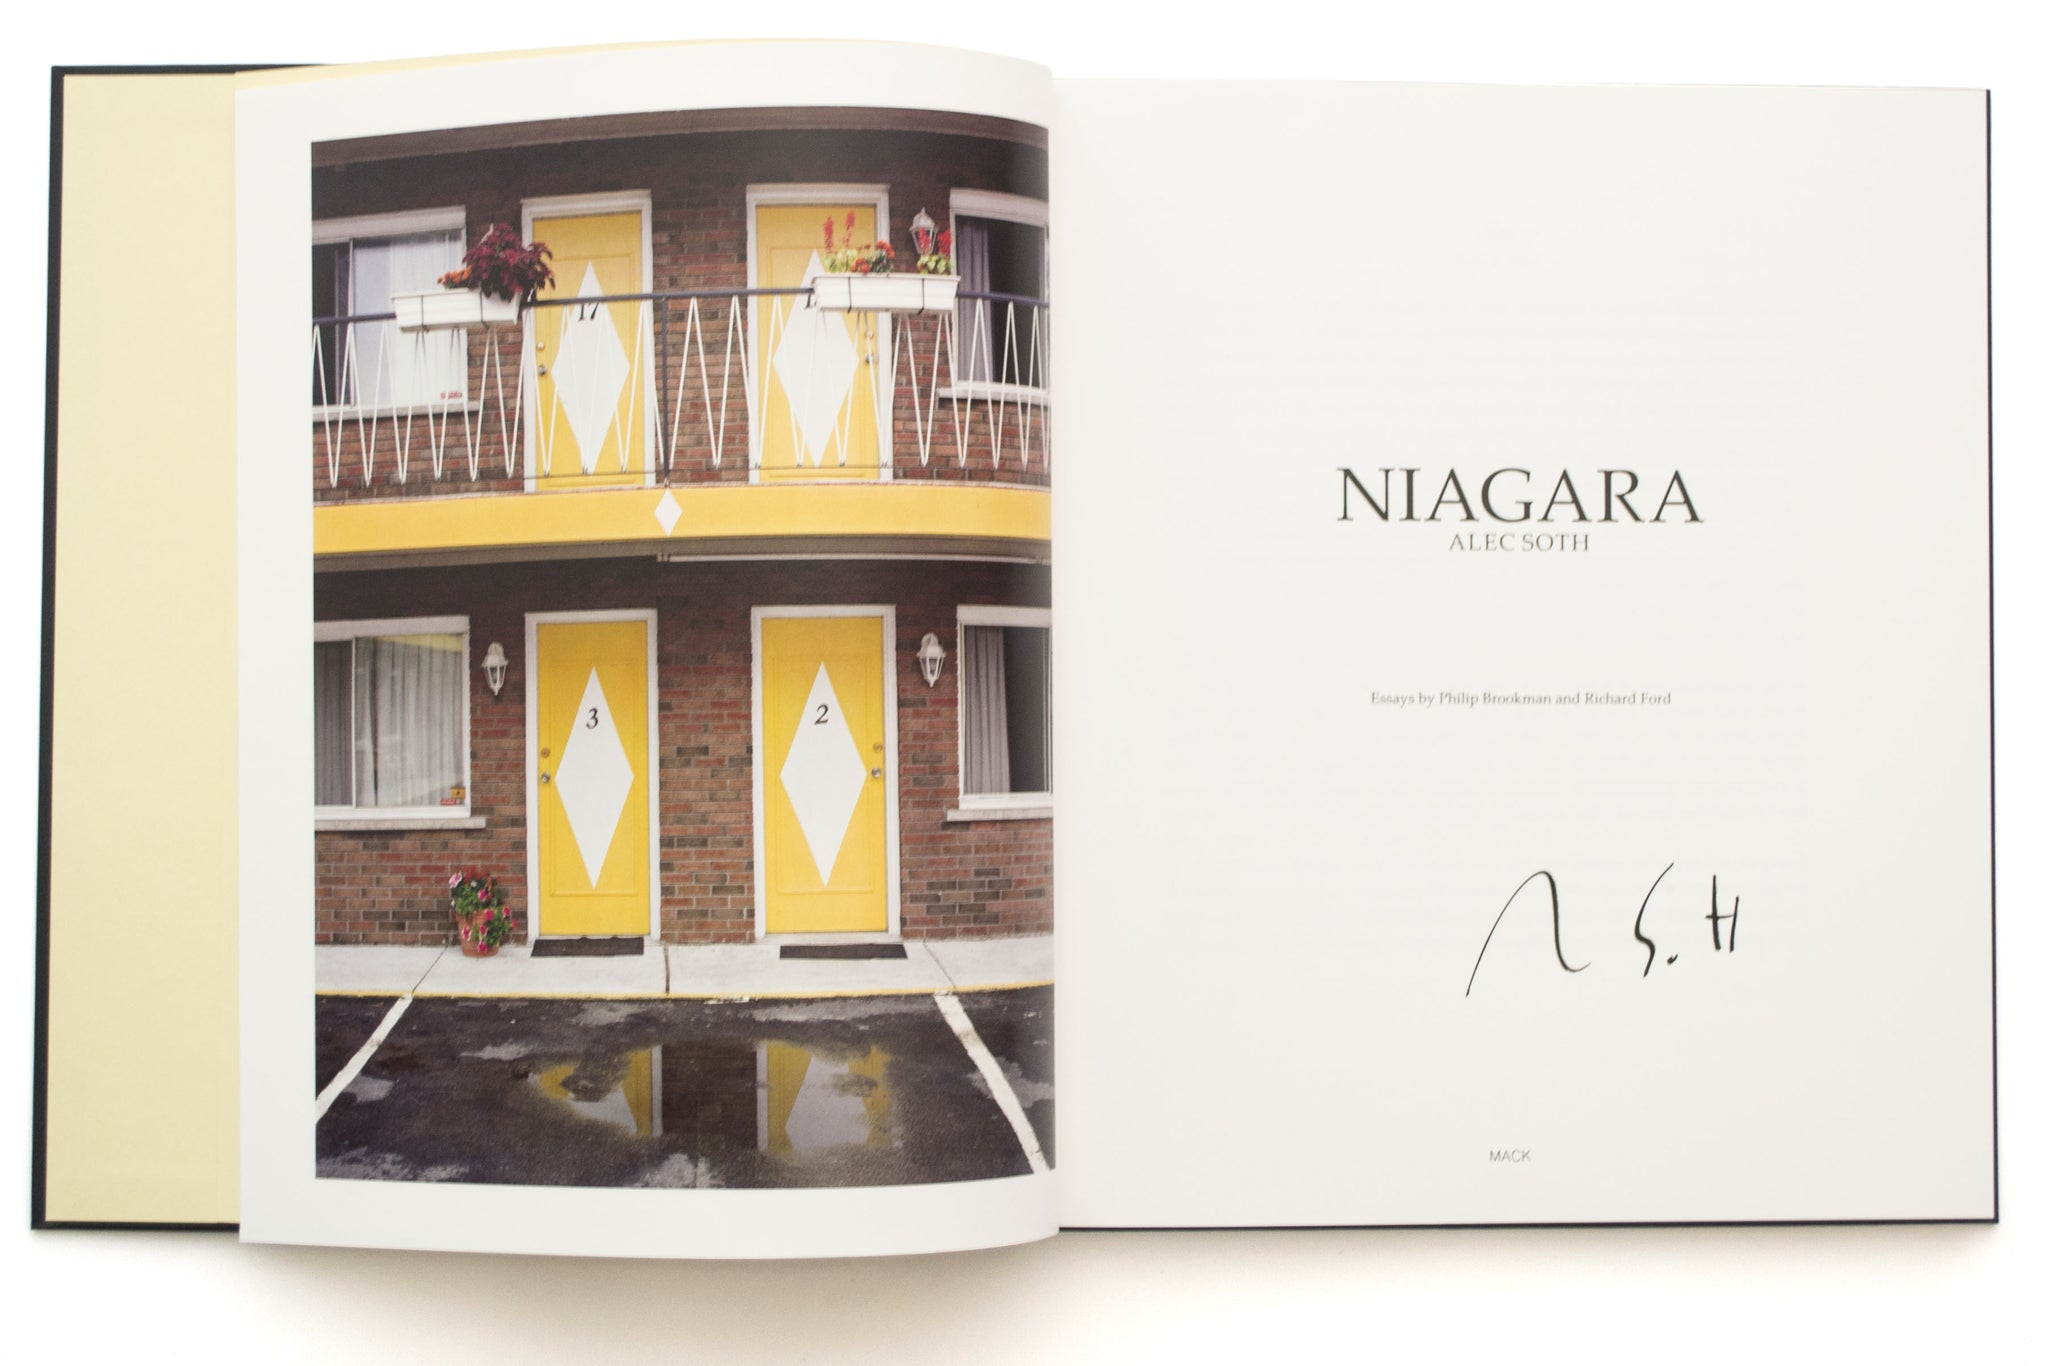 Niagara - Special Edition with Print